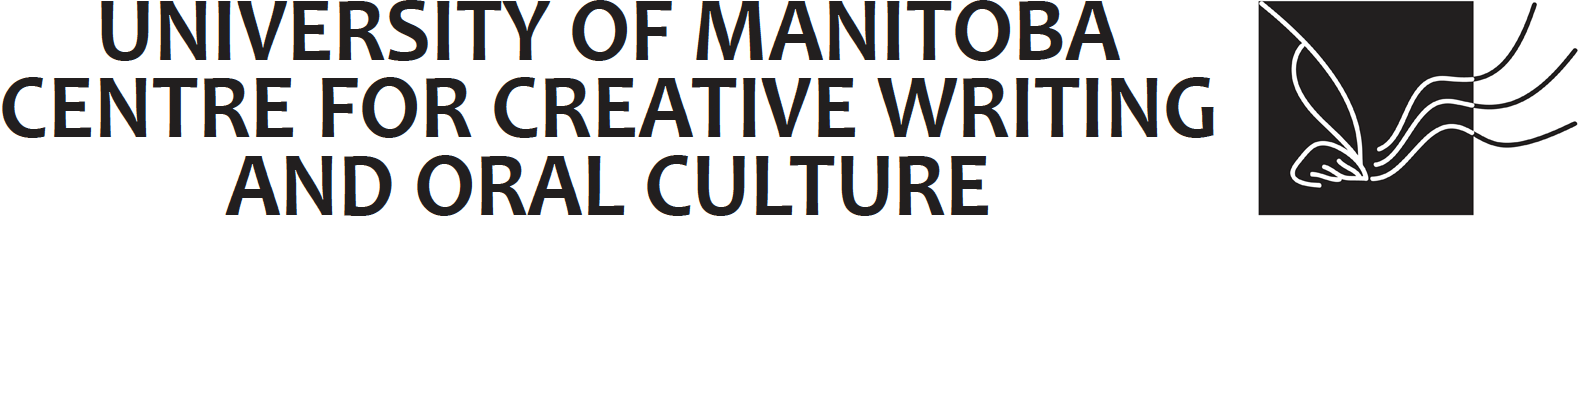 University of Manitoba Centre for Creative Writing and Oral Culture